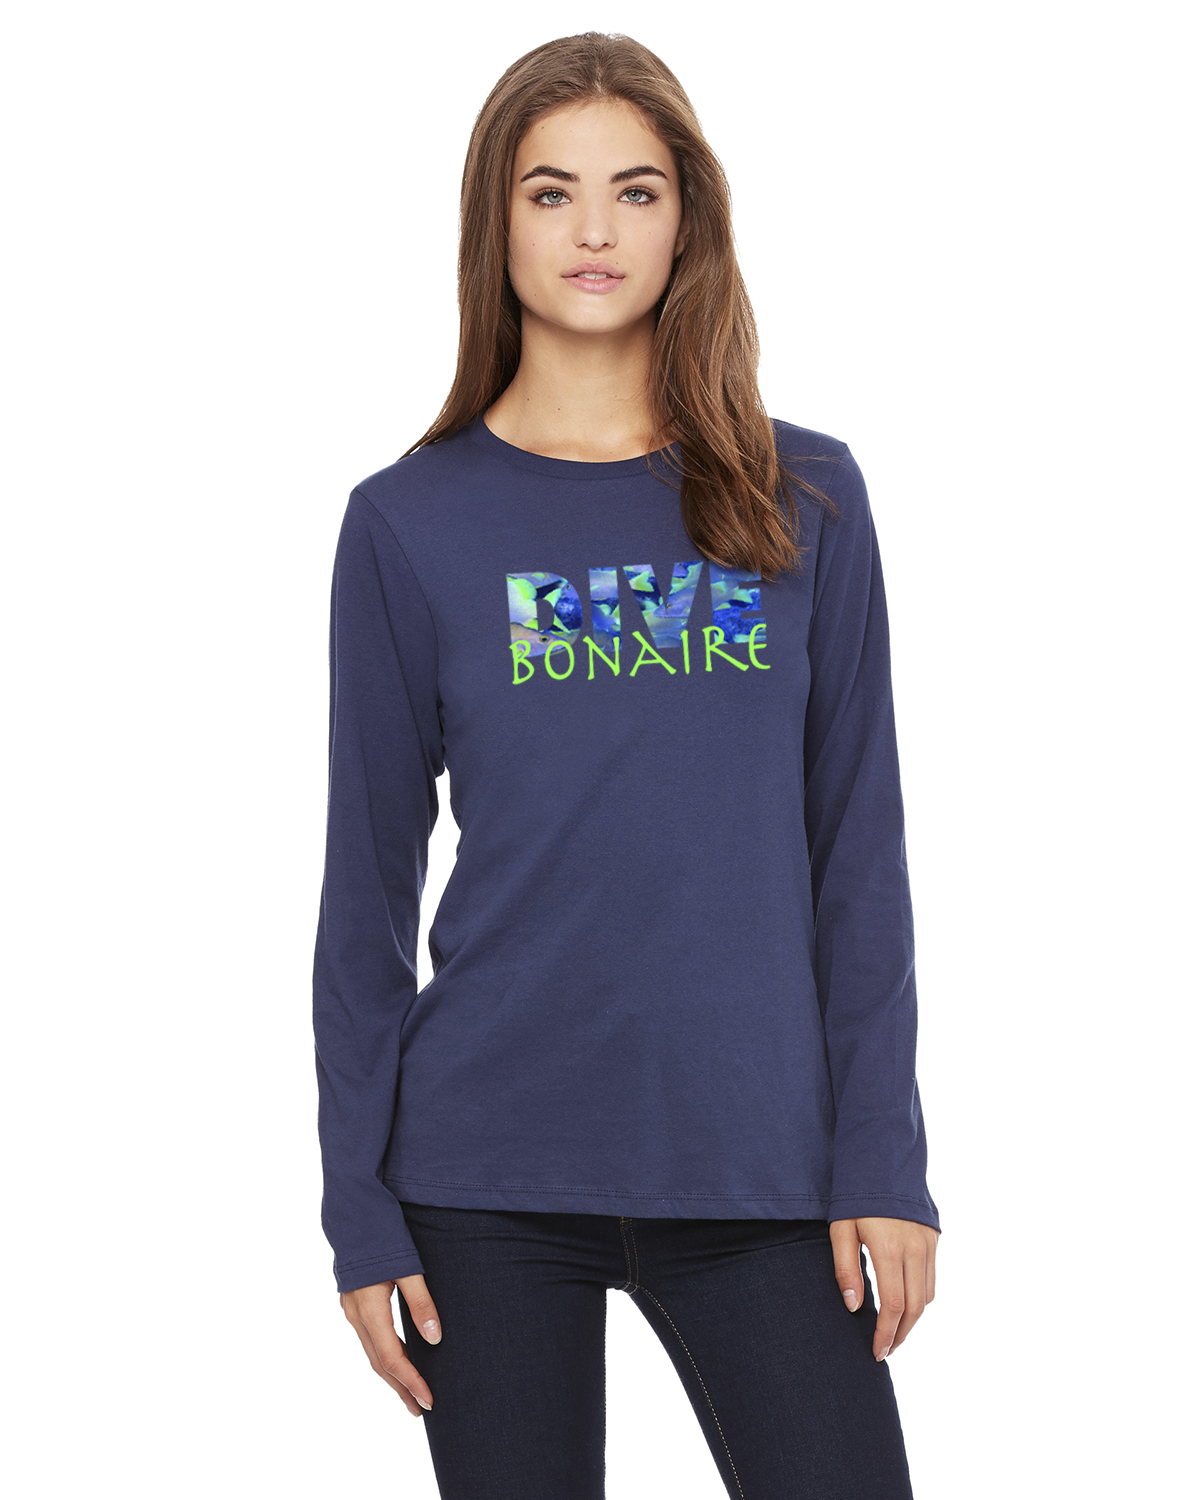 Women's Long Sleeve DIVE Bonaire T-Shirt (Navy)